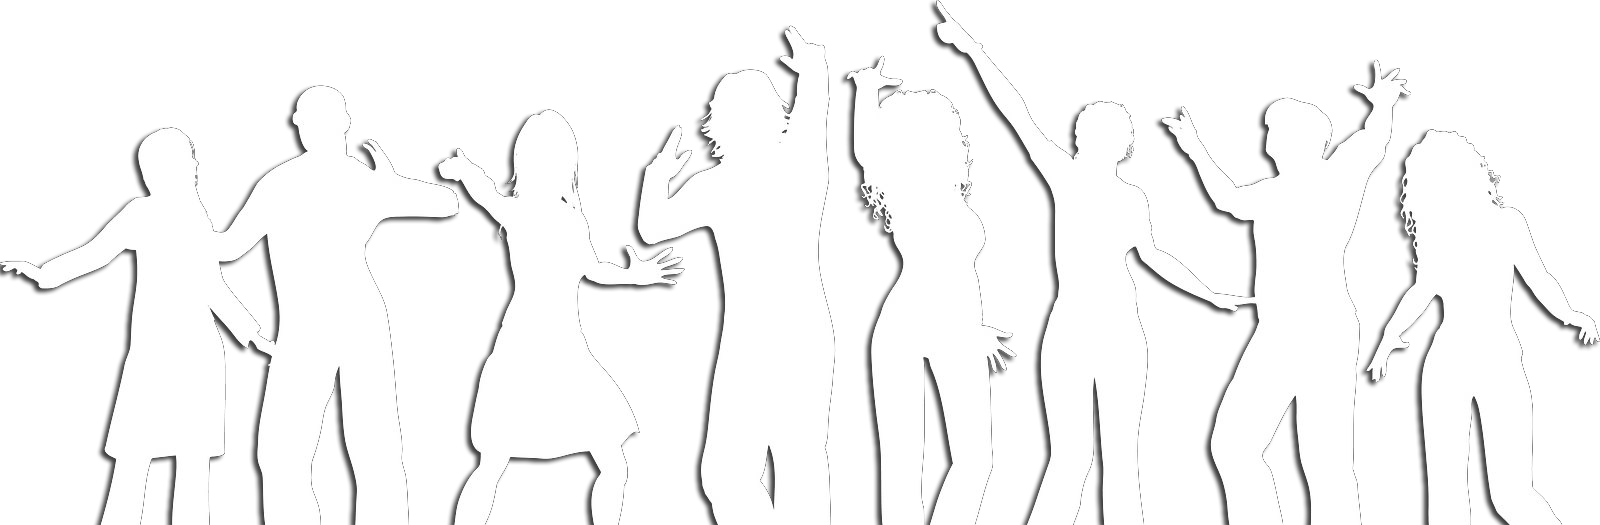 Party people png. Dancing prices from